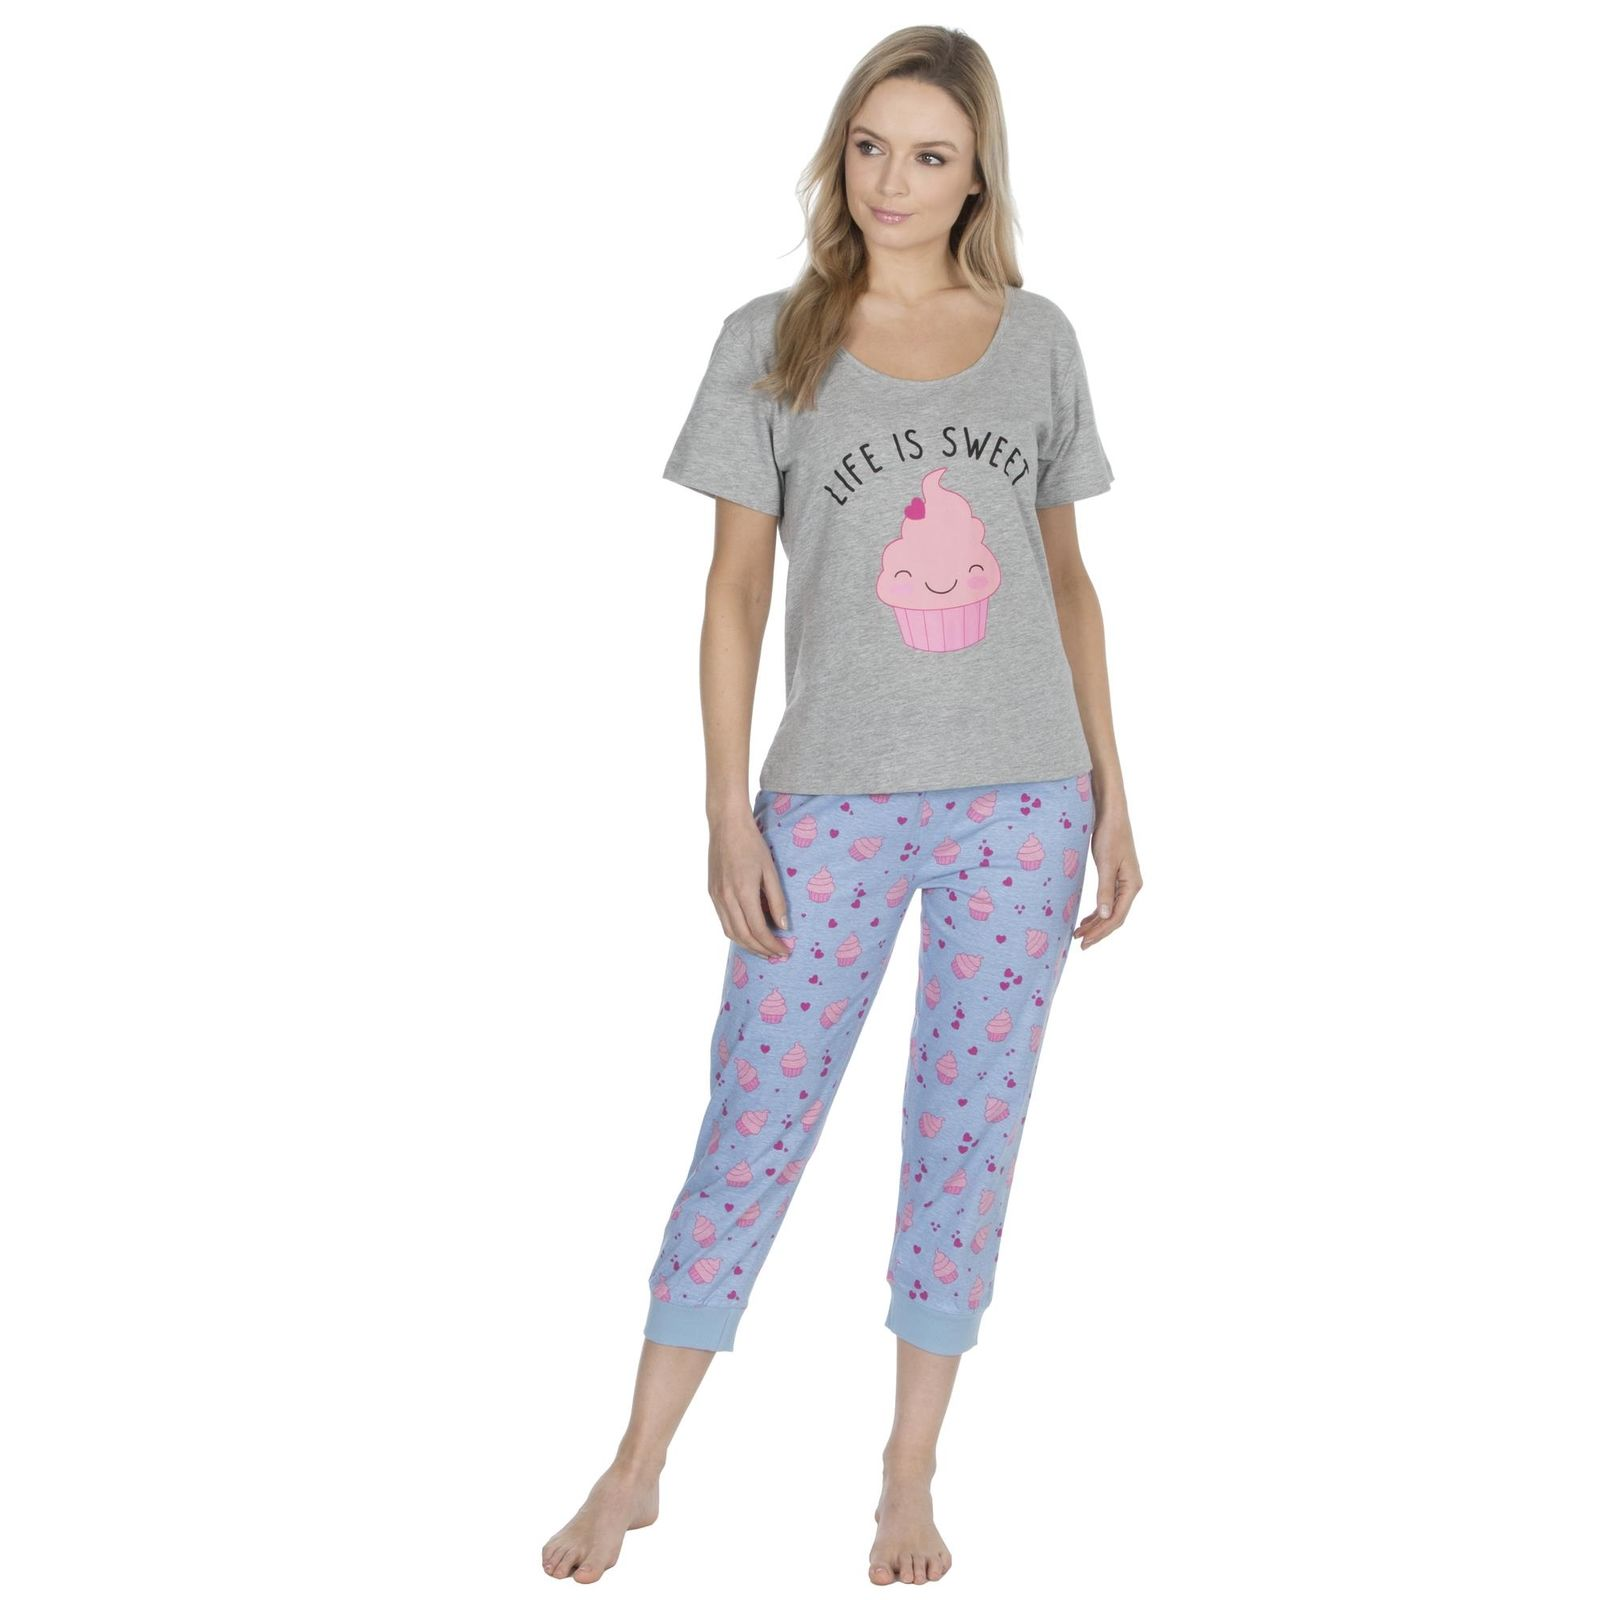 Ladies Cotton Rich Pyjama Sets Photo Print Top and Bottom Set Forever Dreaming